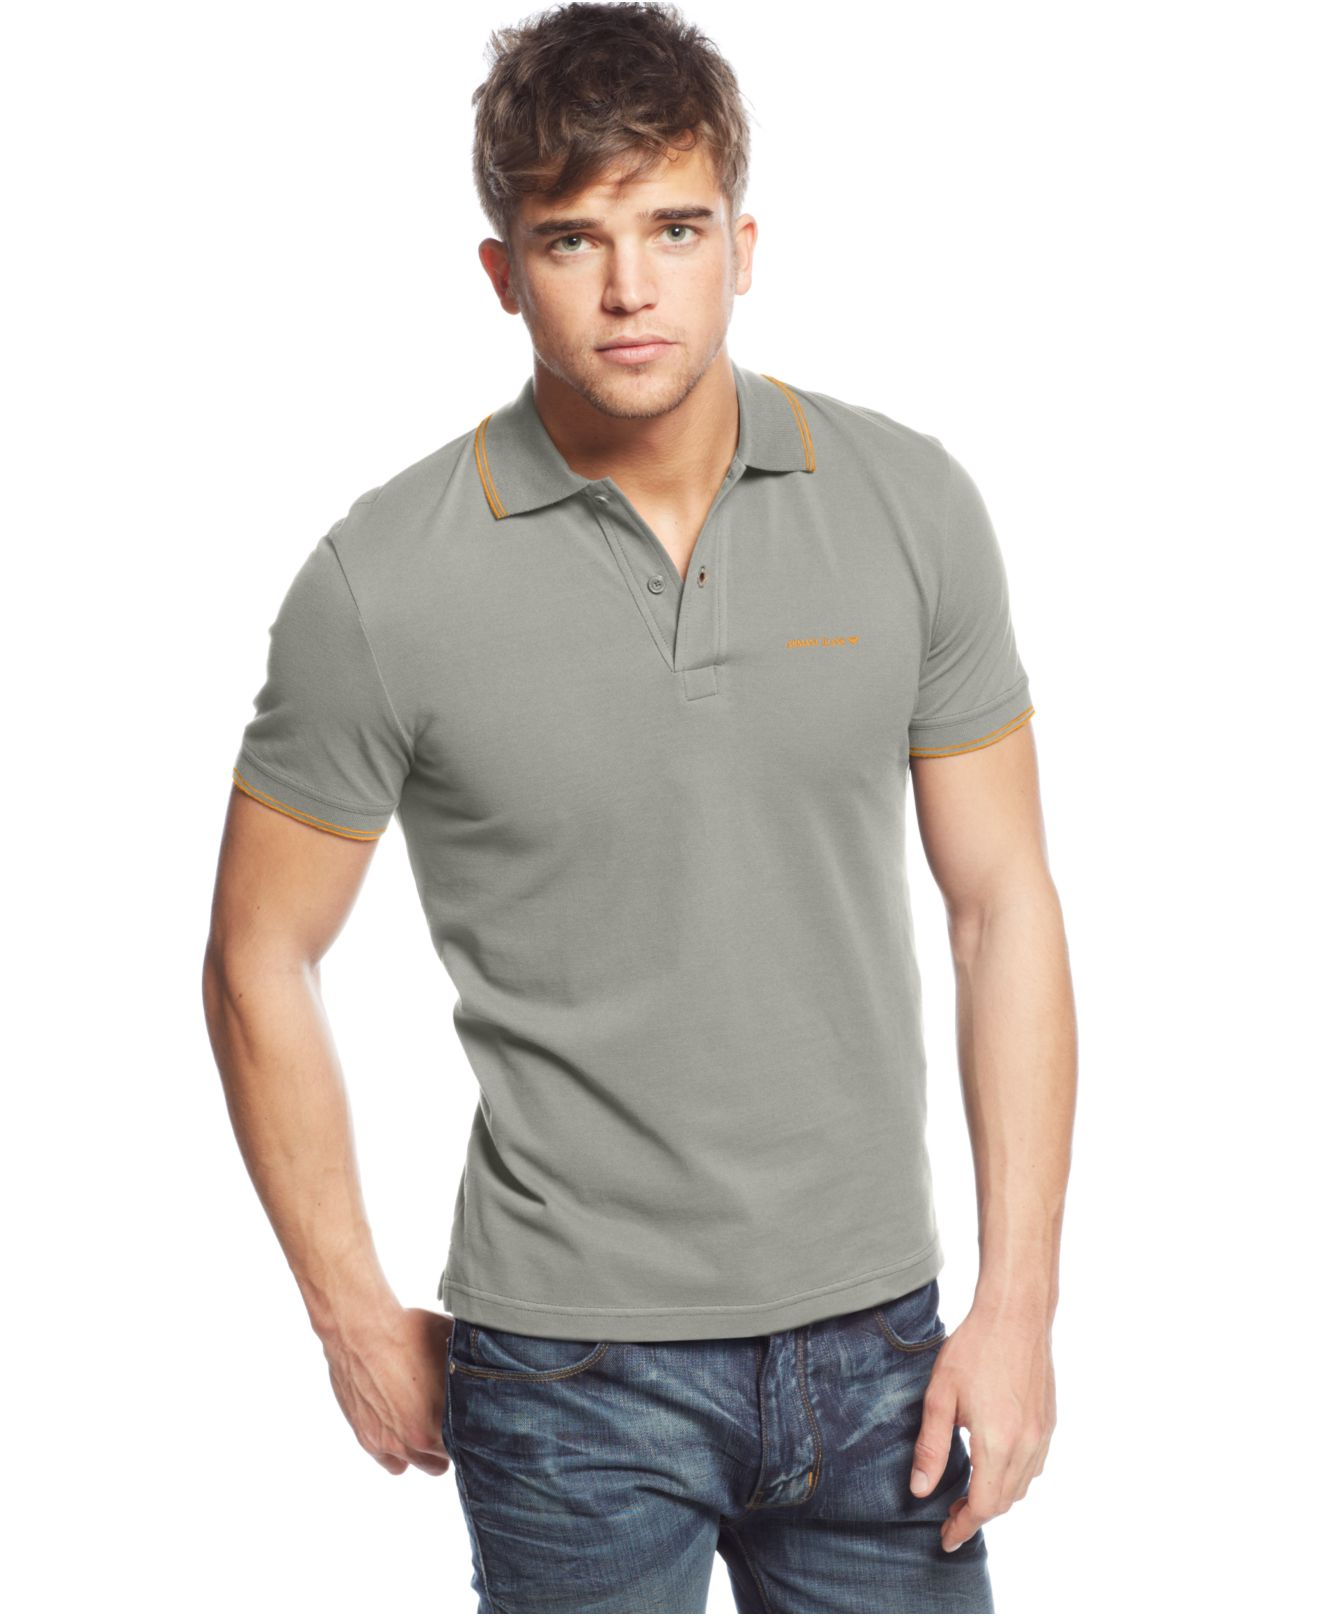 5ef48216a Armani Jeans Tipped Polo in Gray for Men - Lyst